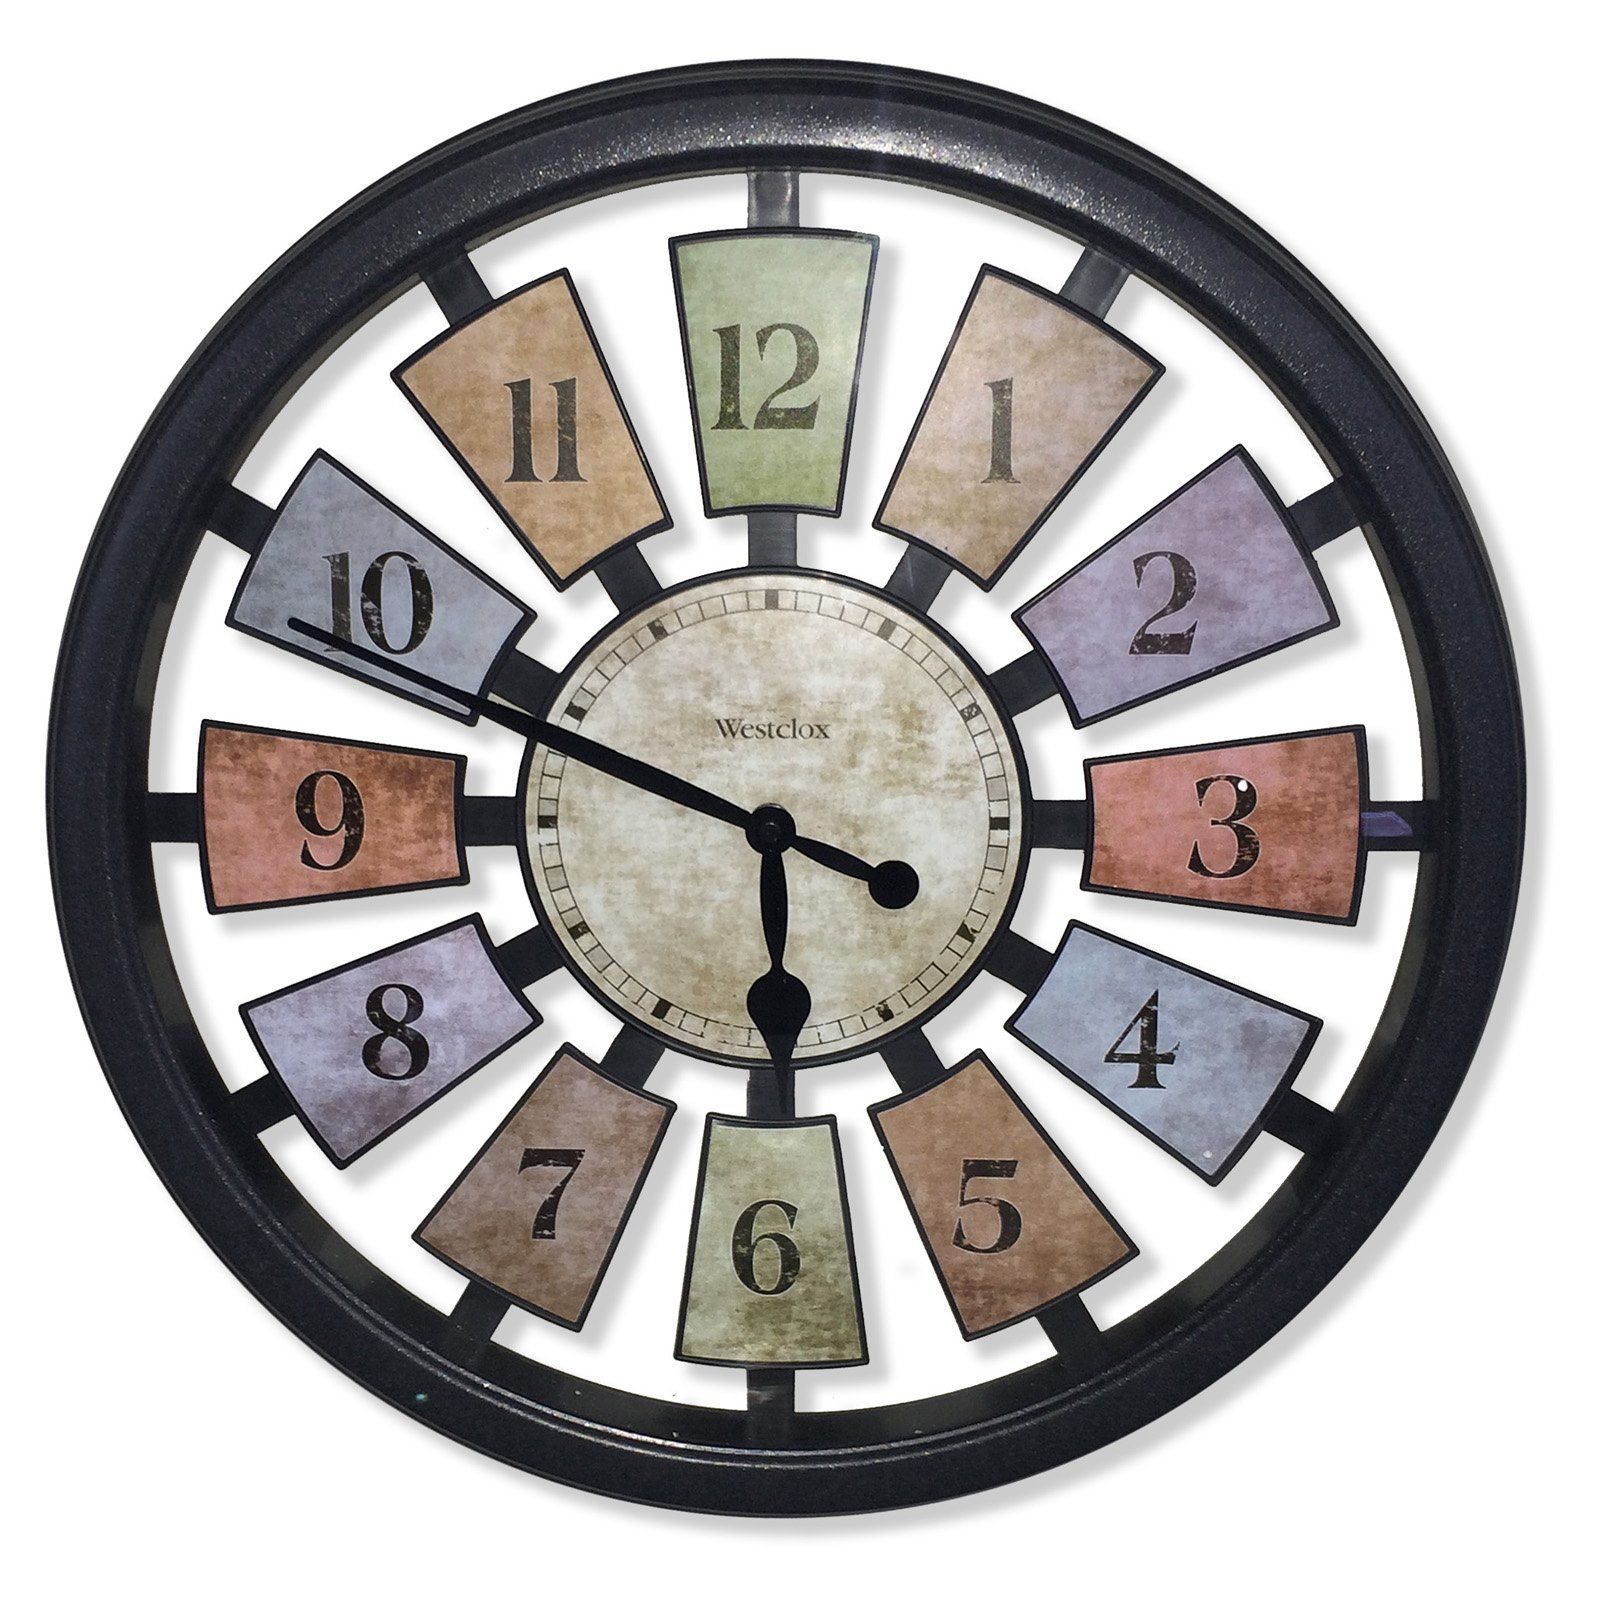 Westclox 185 in round kaleidoscope wall clock 36014 products round kaleidoscope wall clock 36014 amipublicfo Gallery